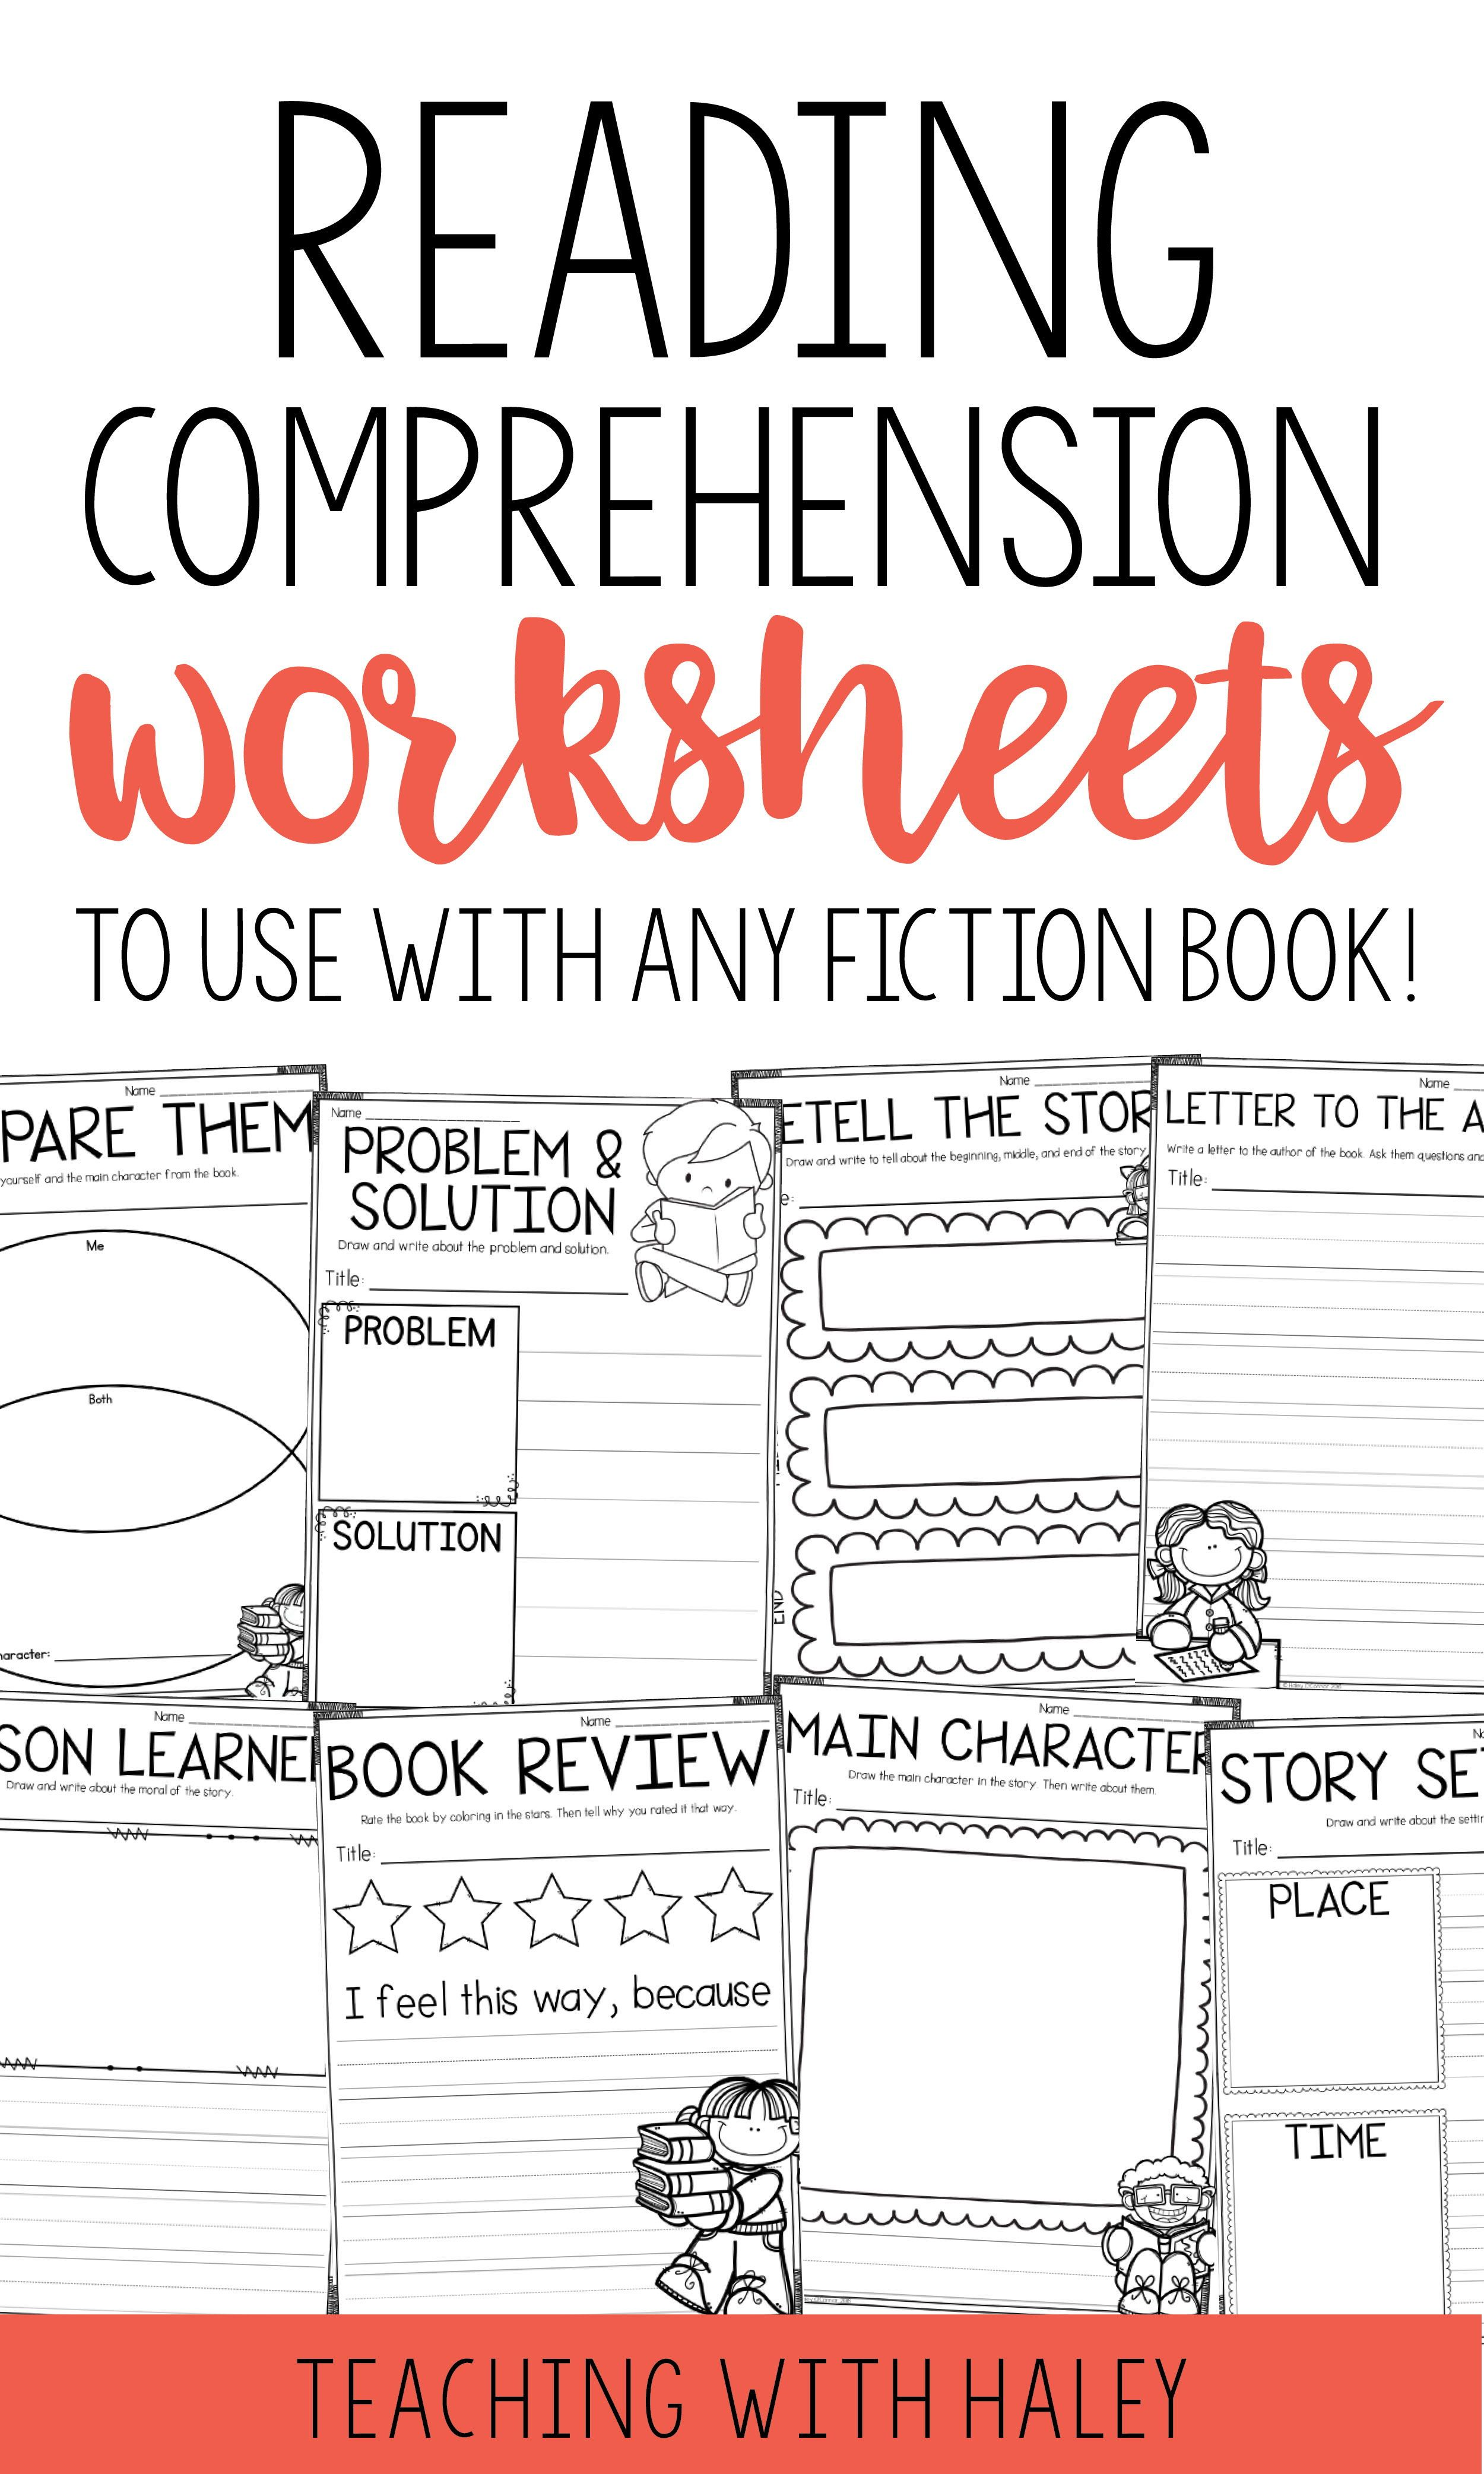 Comprehension Pages For Any Fiction Book